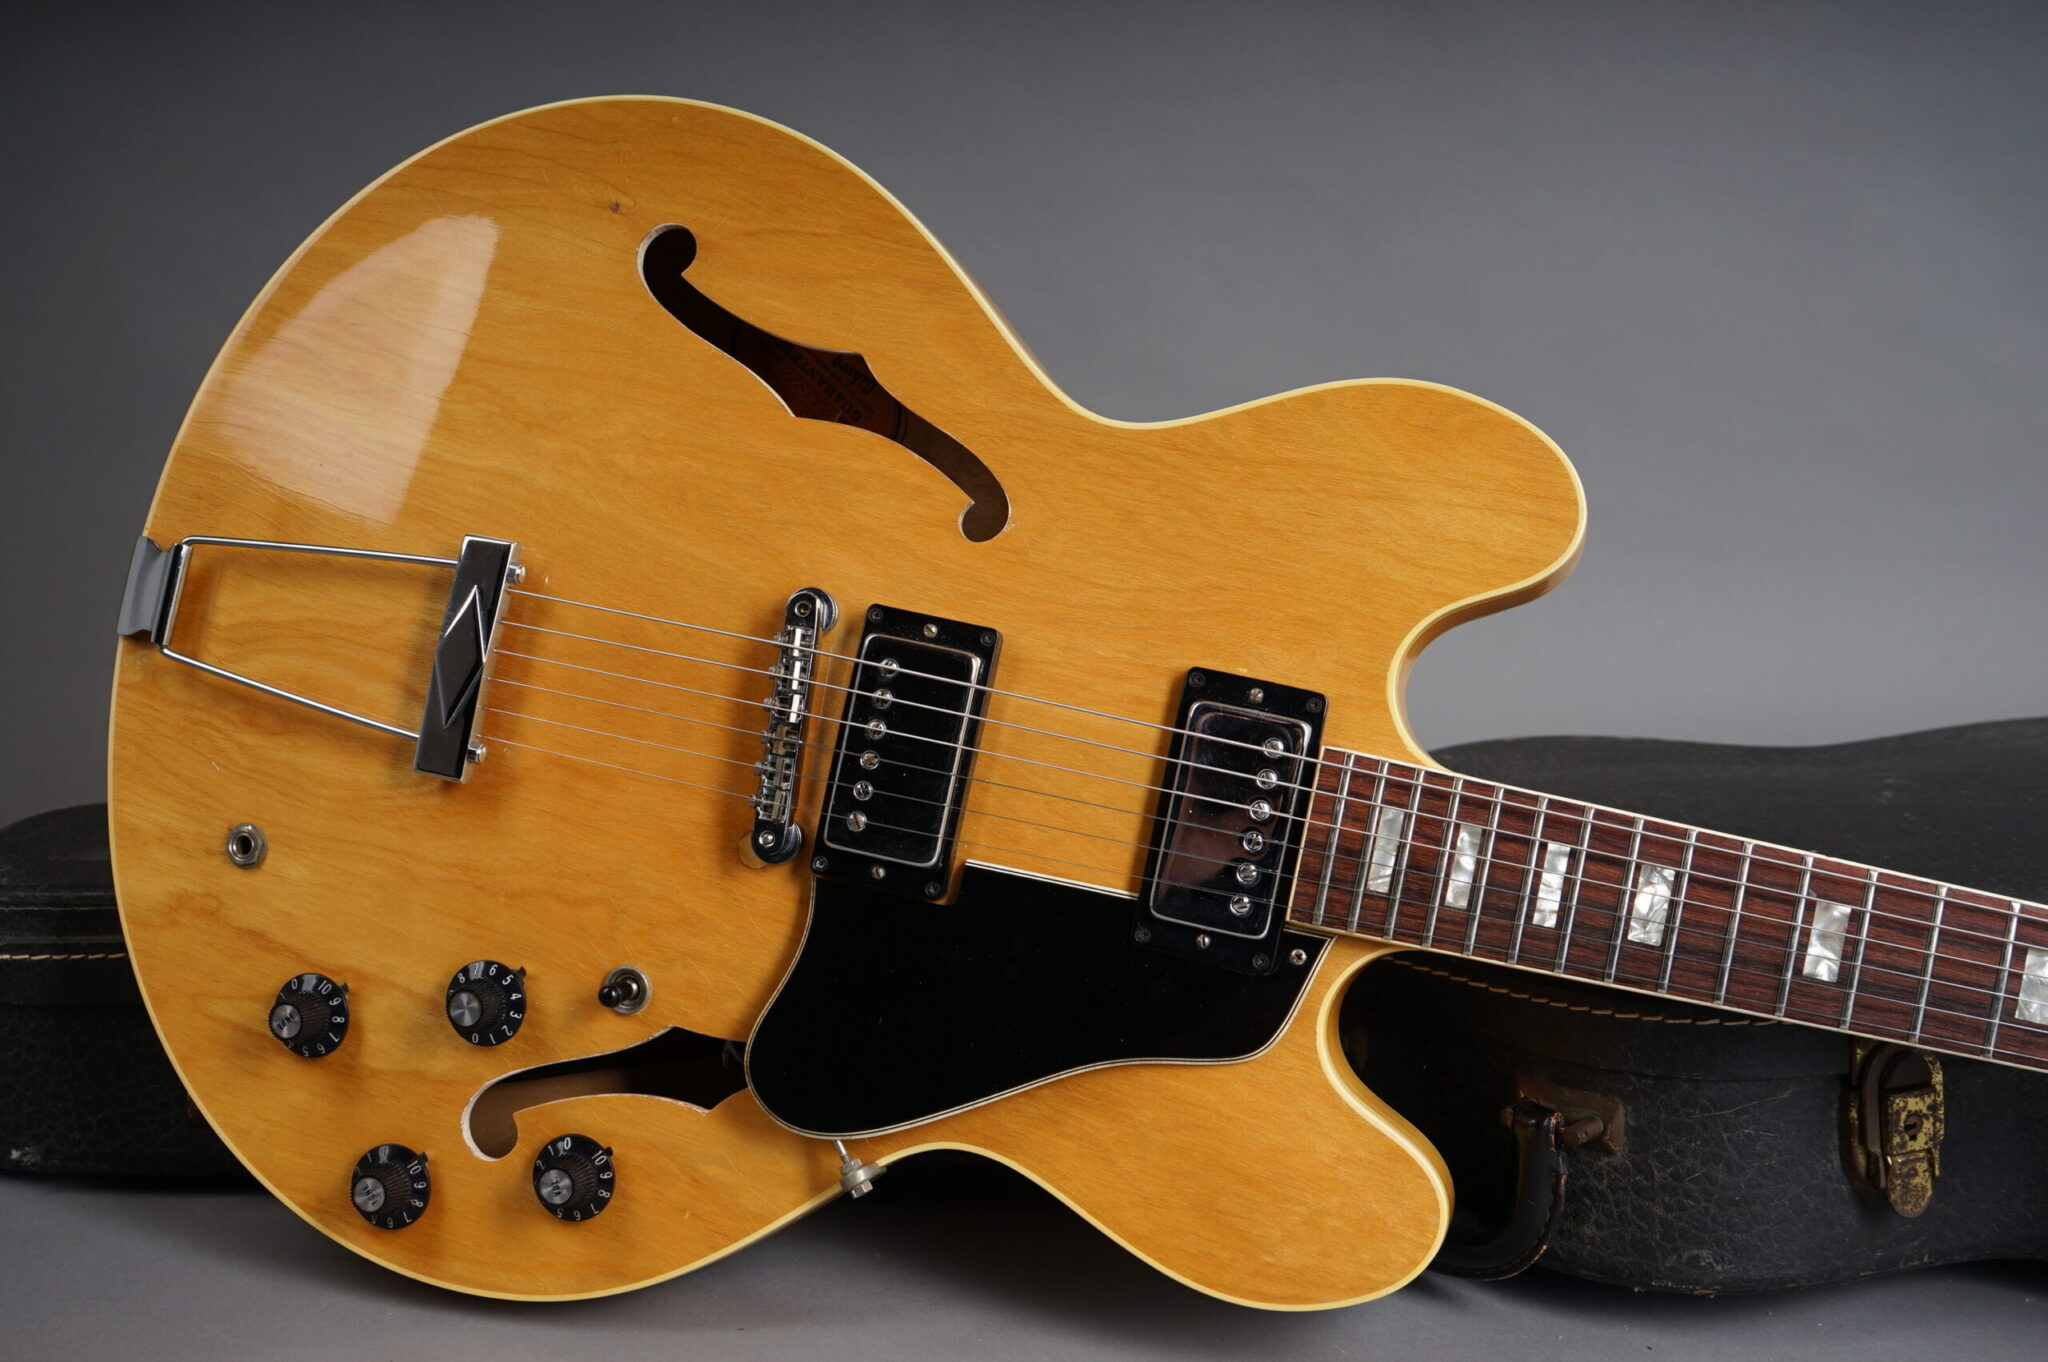 https://guitarpoint.de/app/uploads/products/1970-gibson-es-340td-natural/1970-Gibson-ES340TDN-953980-7-1-scaled-2048x1362.jpg